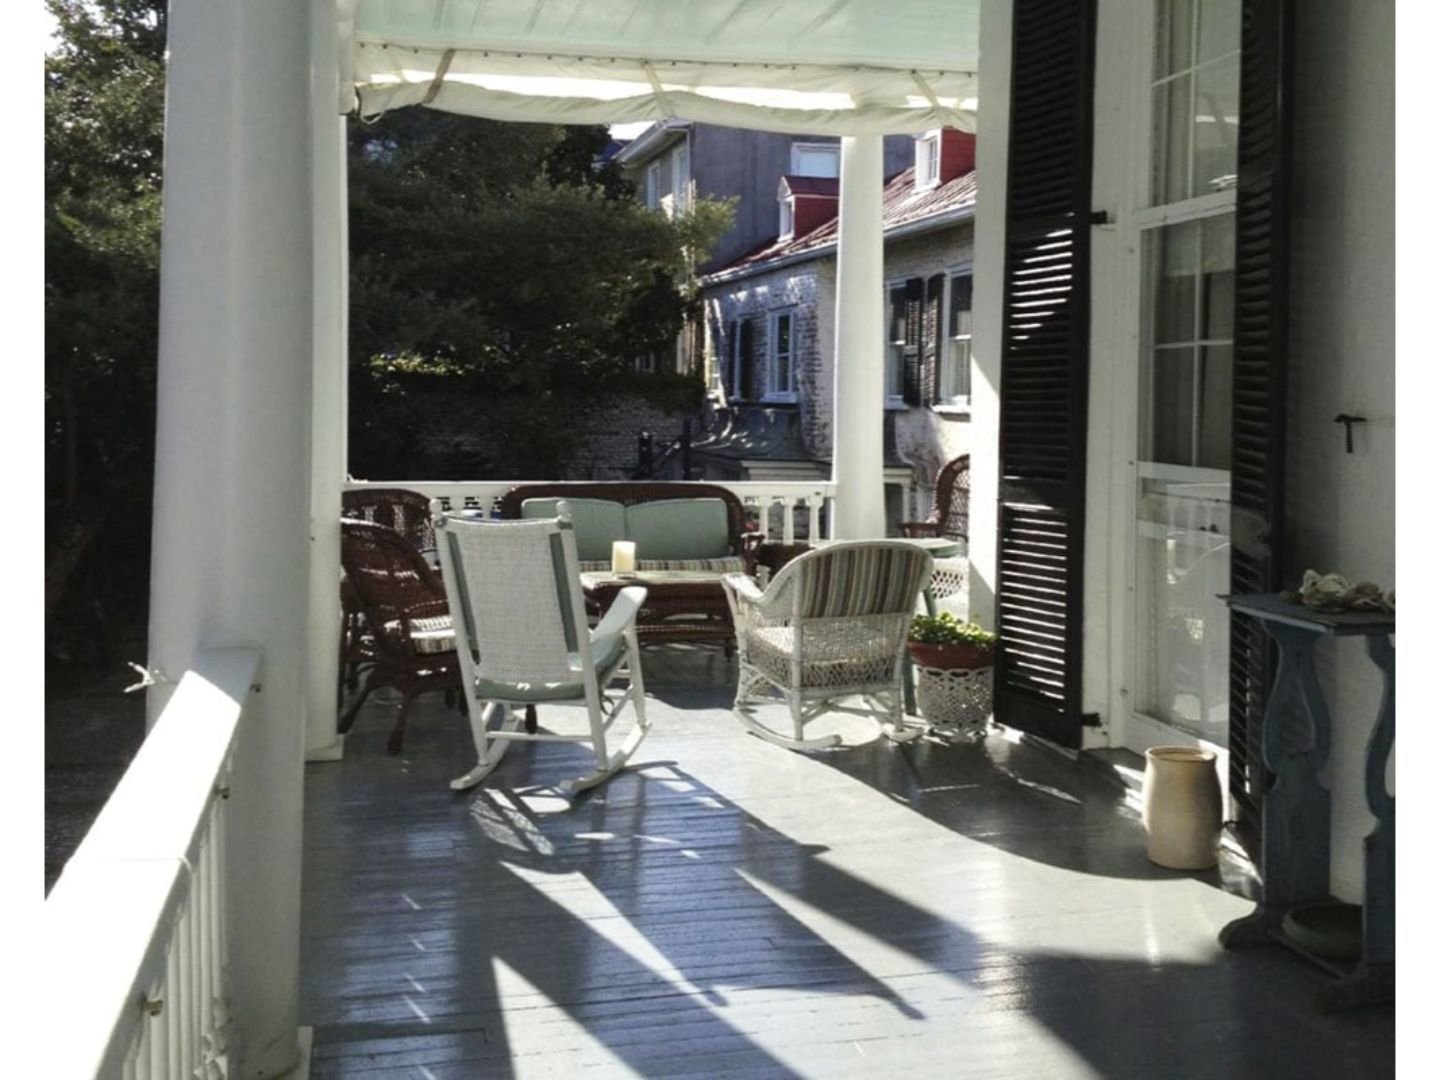 A room filled with furniture and a large window at 15 Church Street Bed & Breakfast.